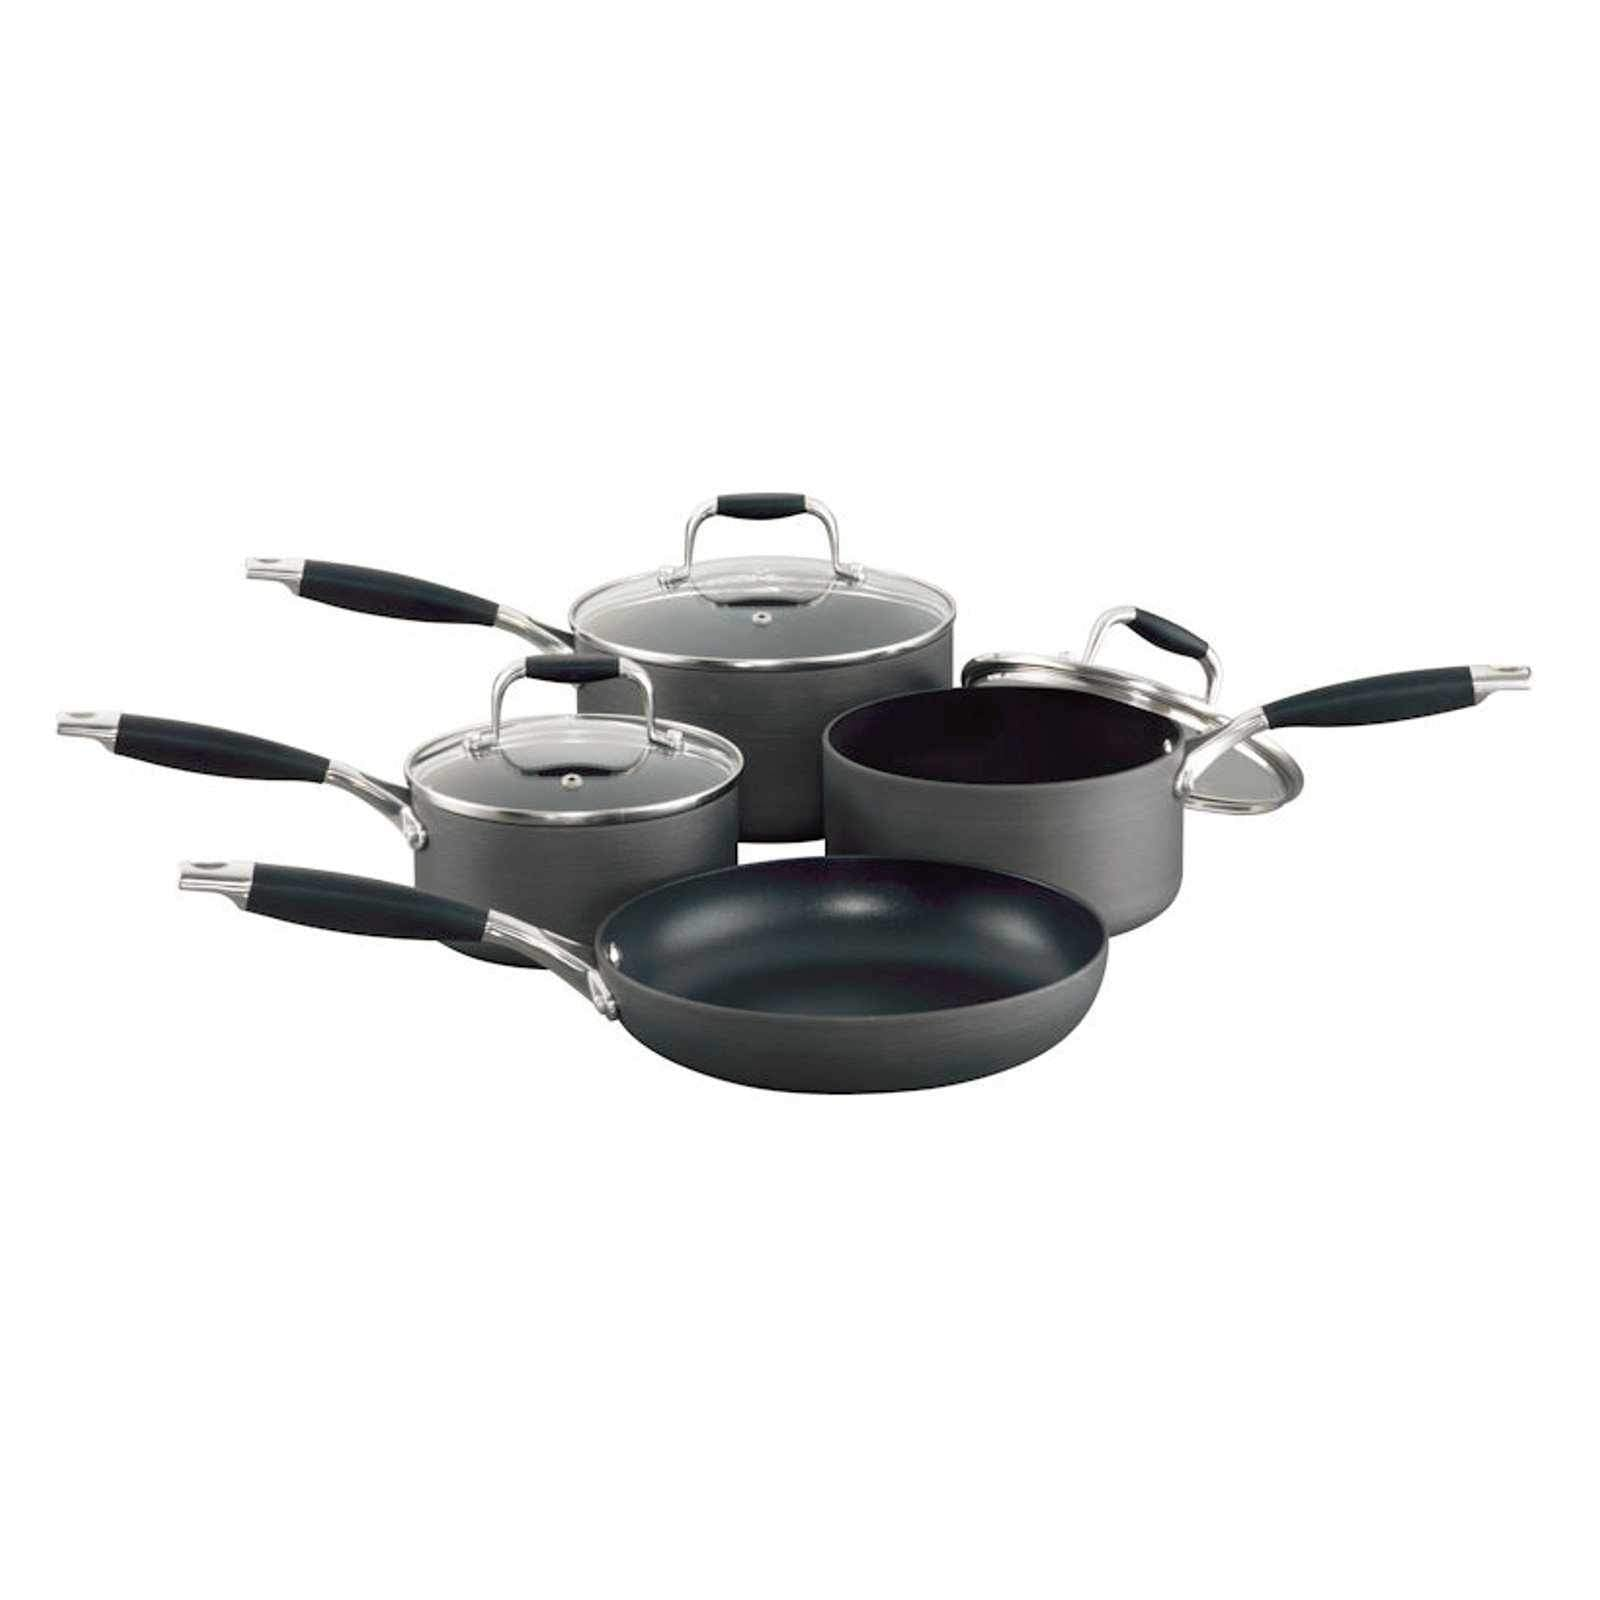 Blinq Elite 4pcs Hard Anodised Cookware Set with Glass Lids-Cookware Set-Chef's Quality Cookware